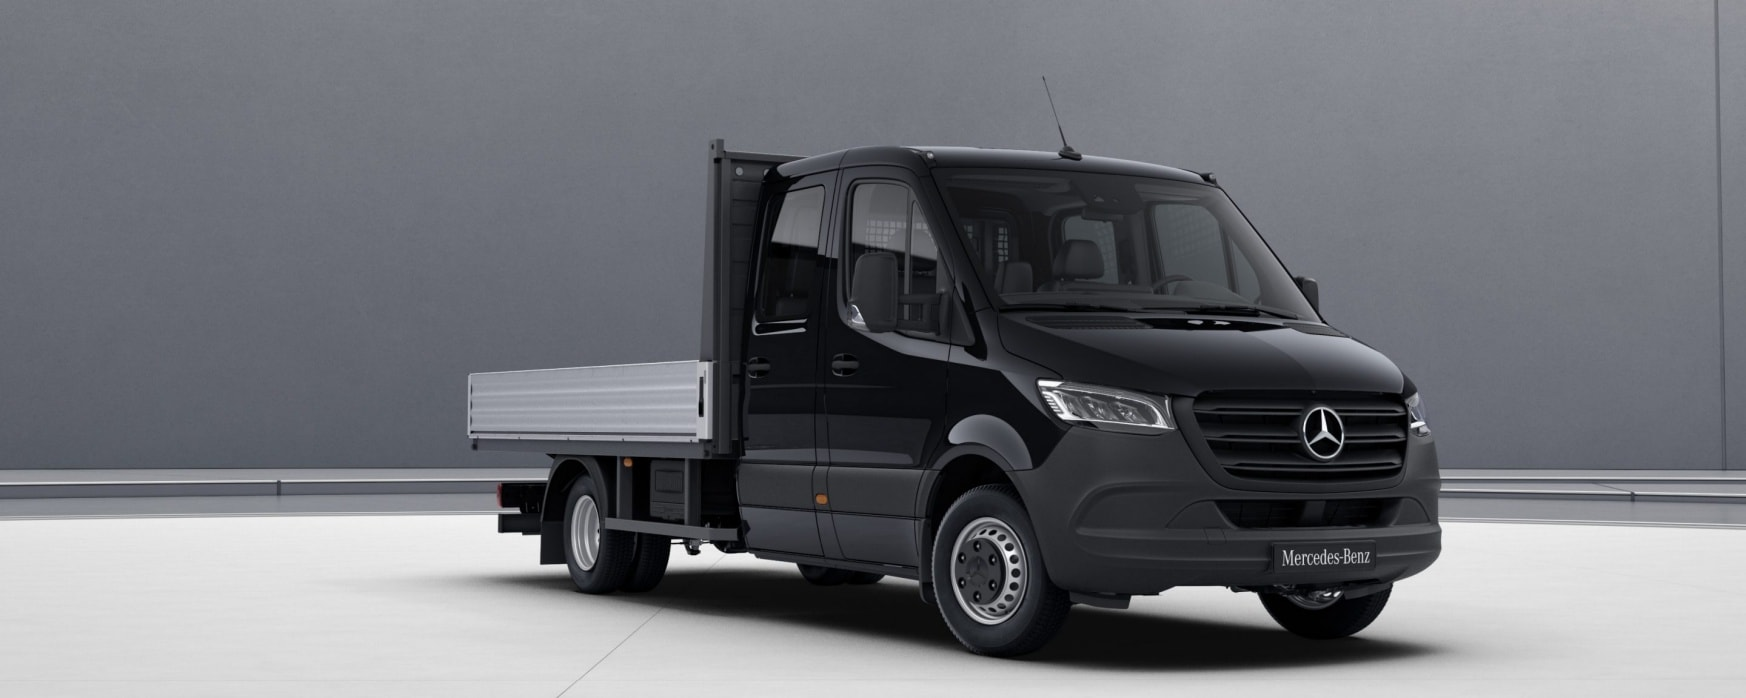 Sprinter Platform Vehicle, deep black